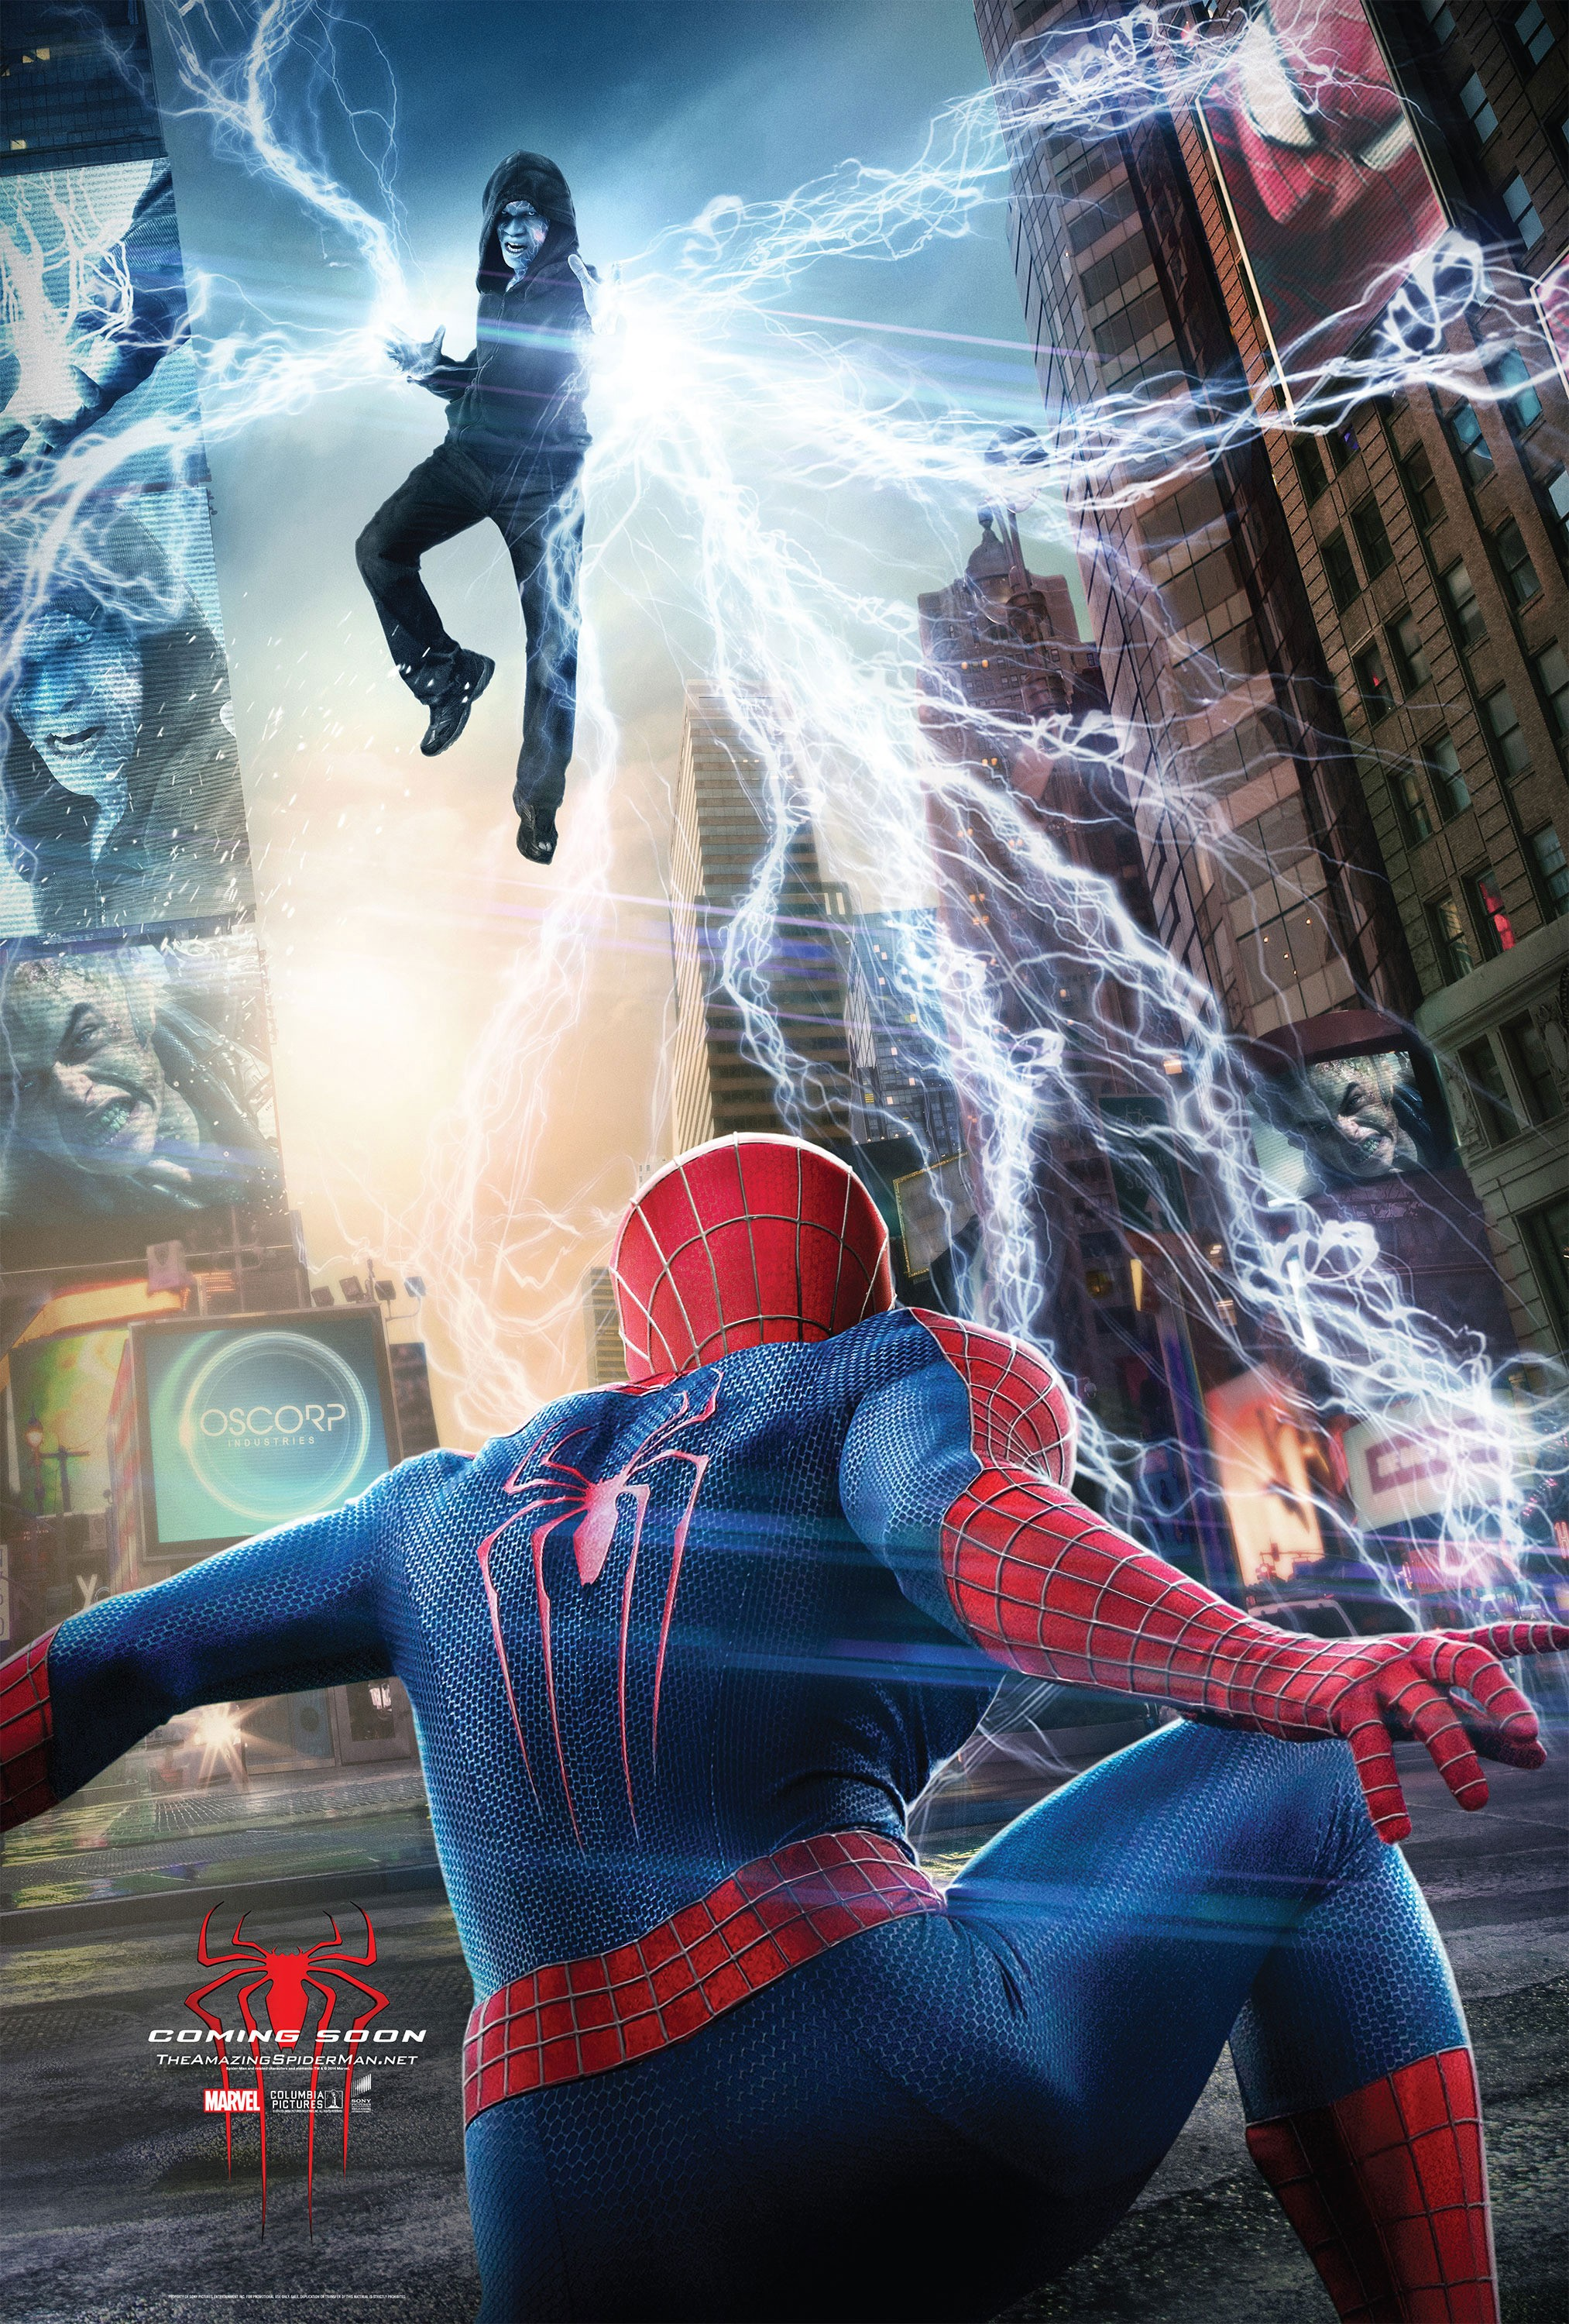 The Amazing Spider-Man 2-Official Poster Banner PROMO XLG-08JANEIRO2014-03